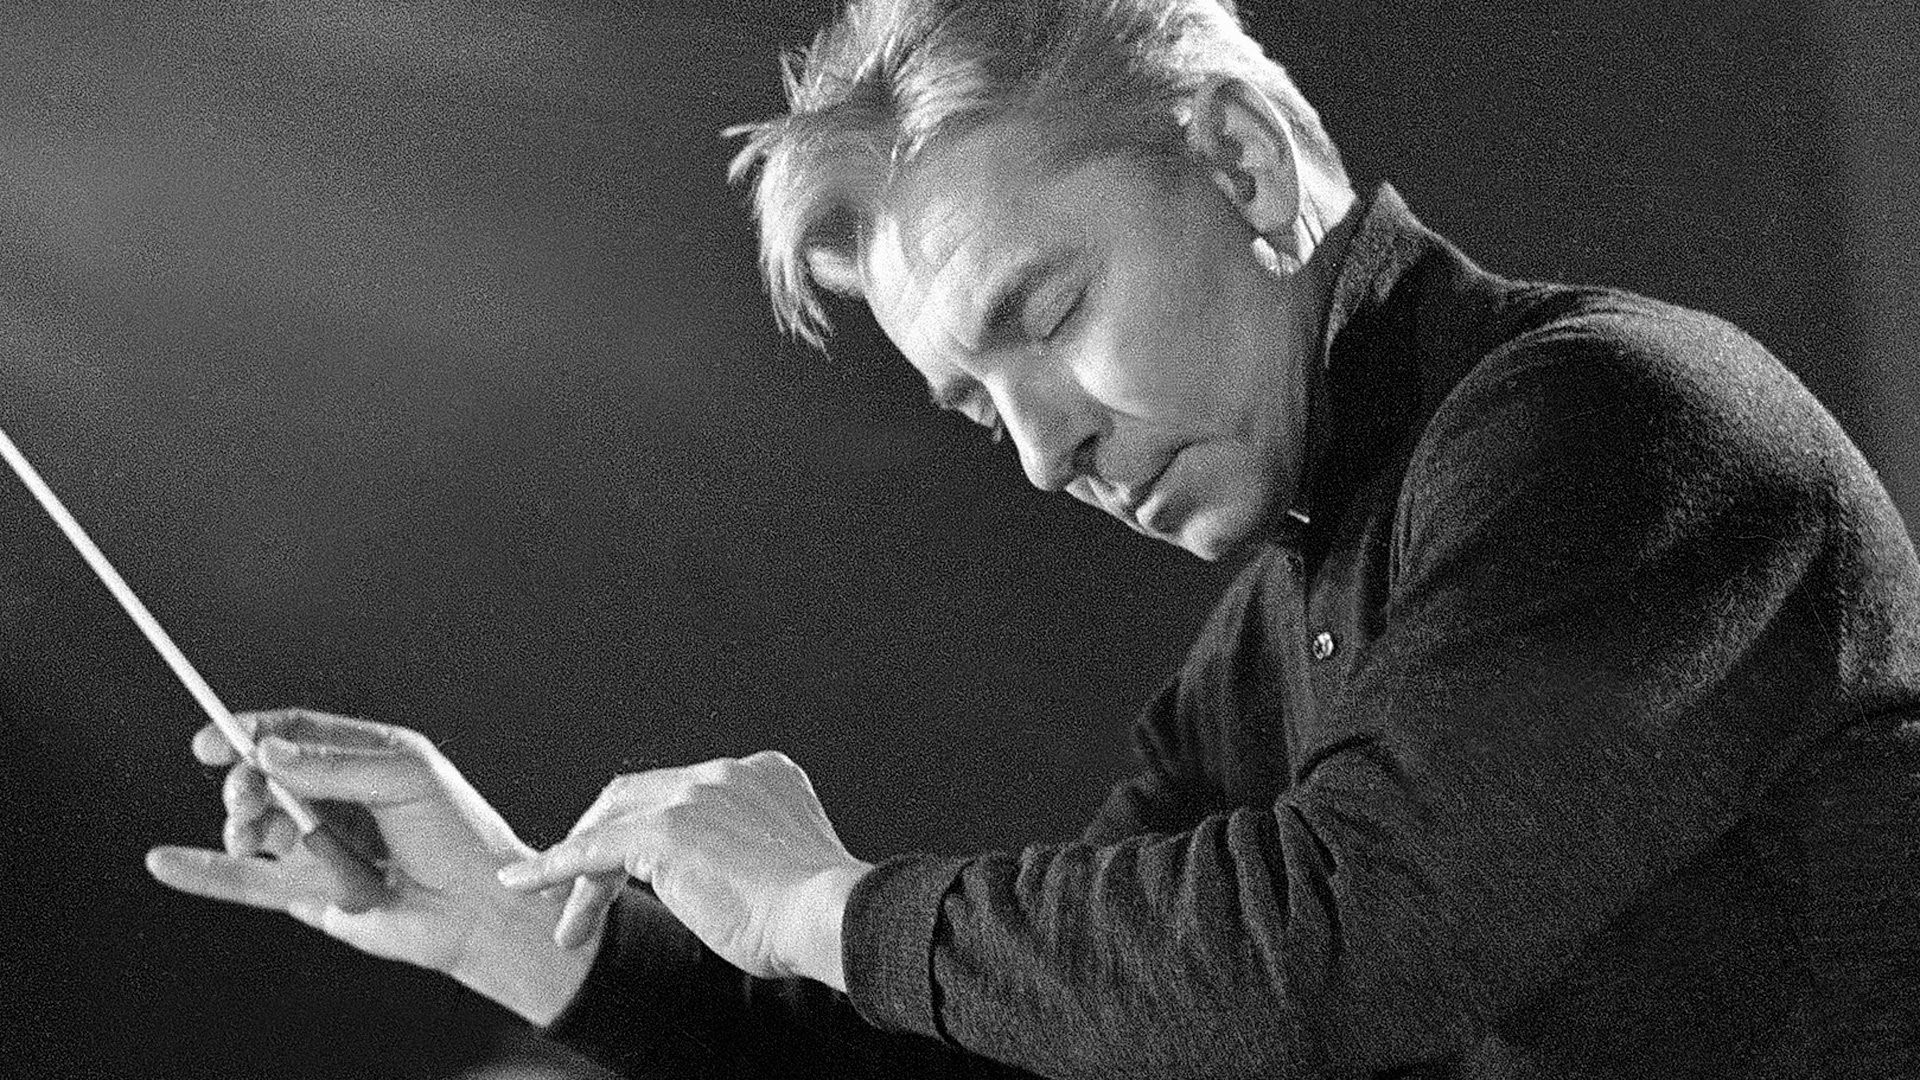 Herbert von Karajan - The Complete EMI Recordings 1946-1984. Volume 2 - Opera & Vocal